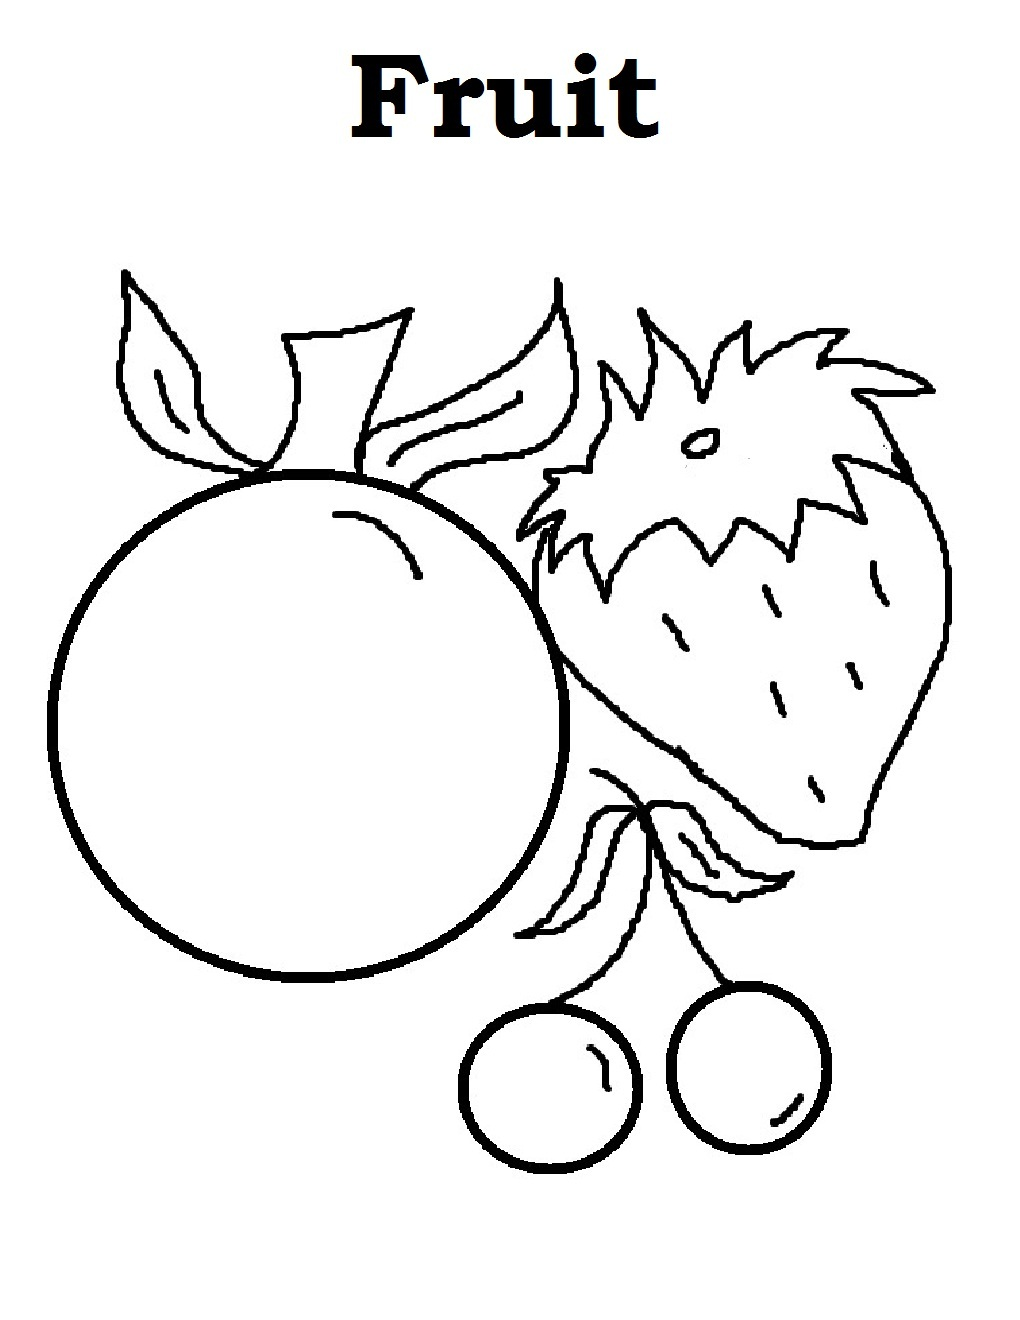 coloring pages fruit free printable fruit coloring pages for kids fruit pages coloring